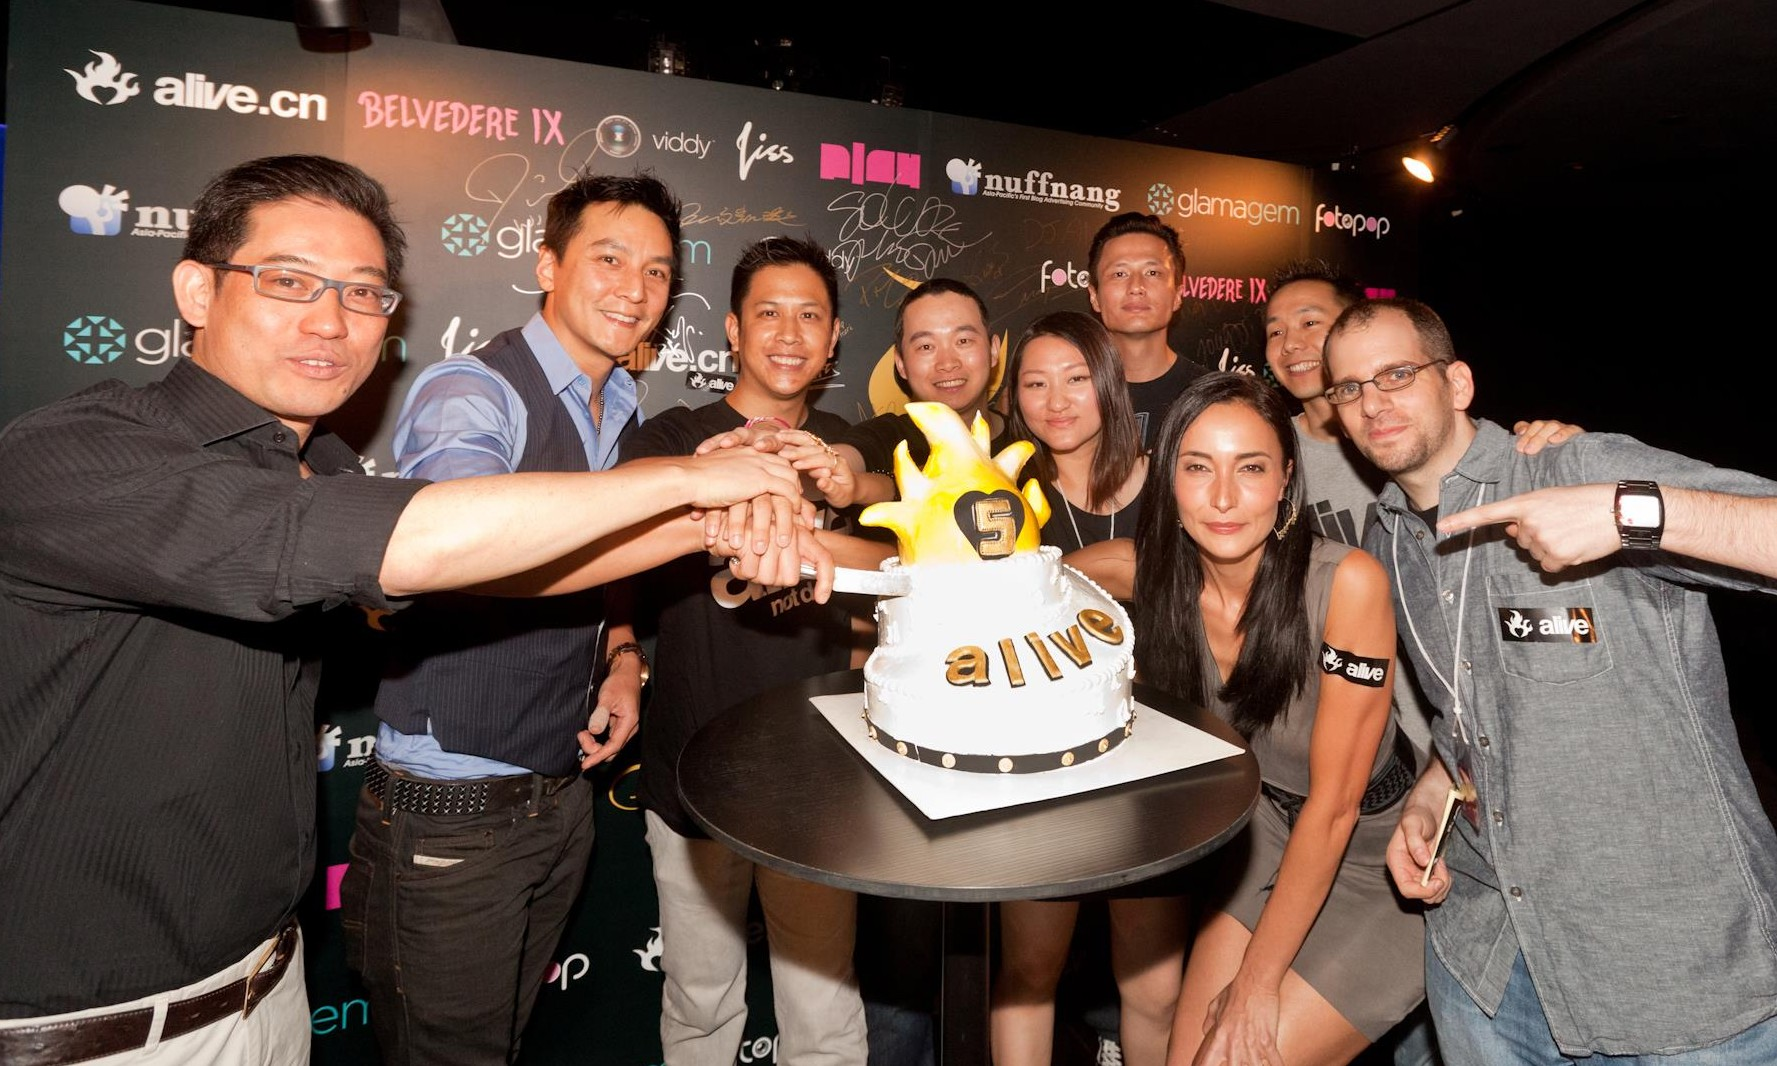 macau chatrooms Phil ivey helps launch new poker room in macau may 25th, 2015 by daniel smyth phil ivey attends a charity poker event to help launch a new poker room at the venetian.